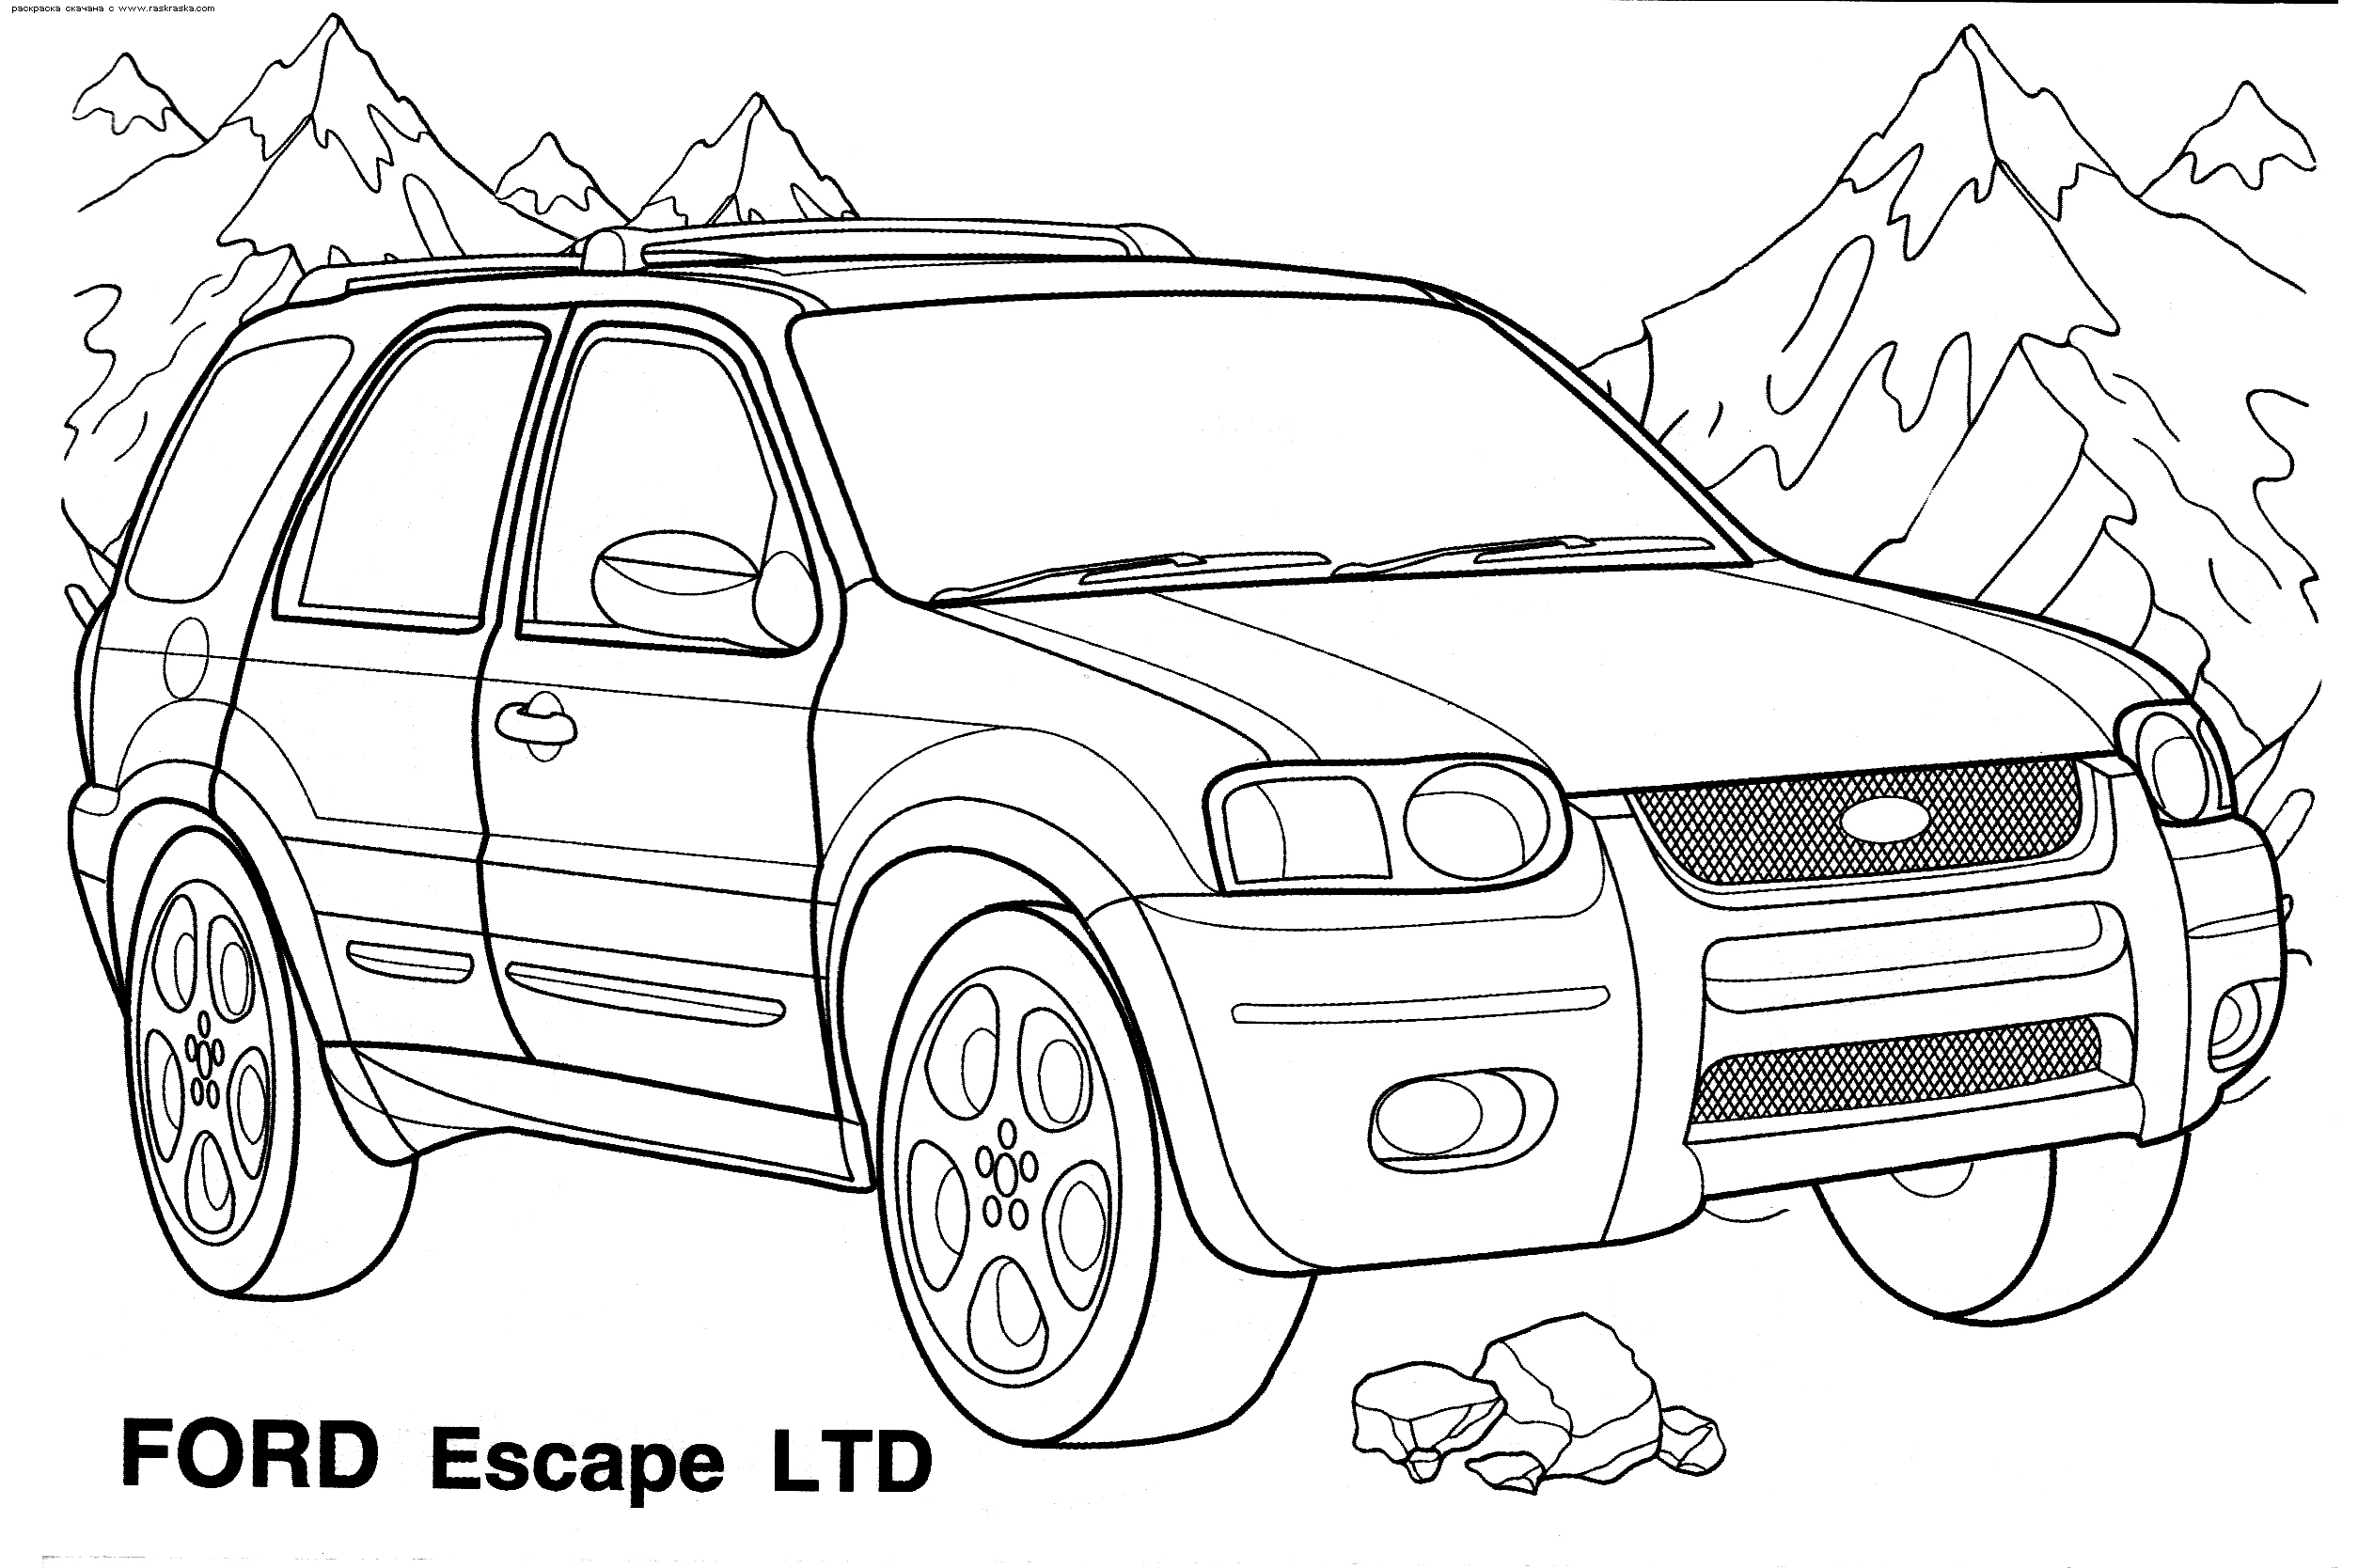 Emejing Ambulance Coloring Pages Kids Gallery - New Coloring Pages ...